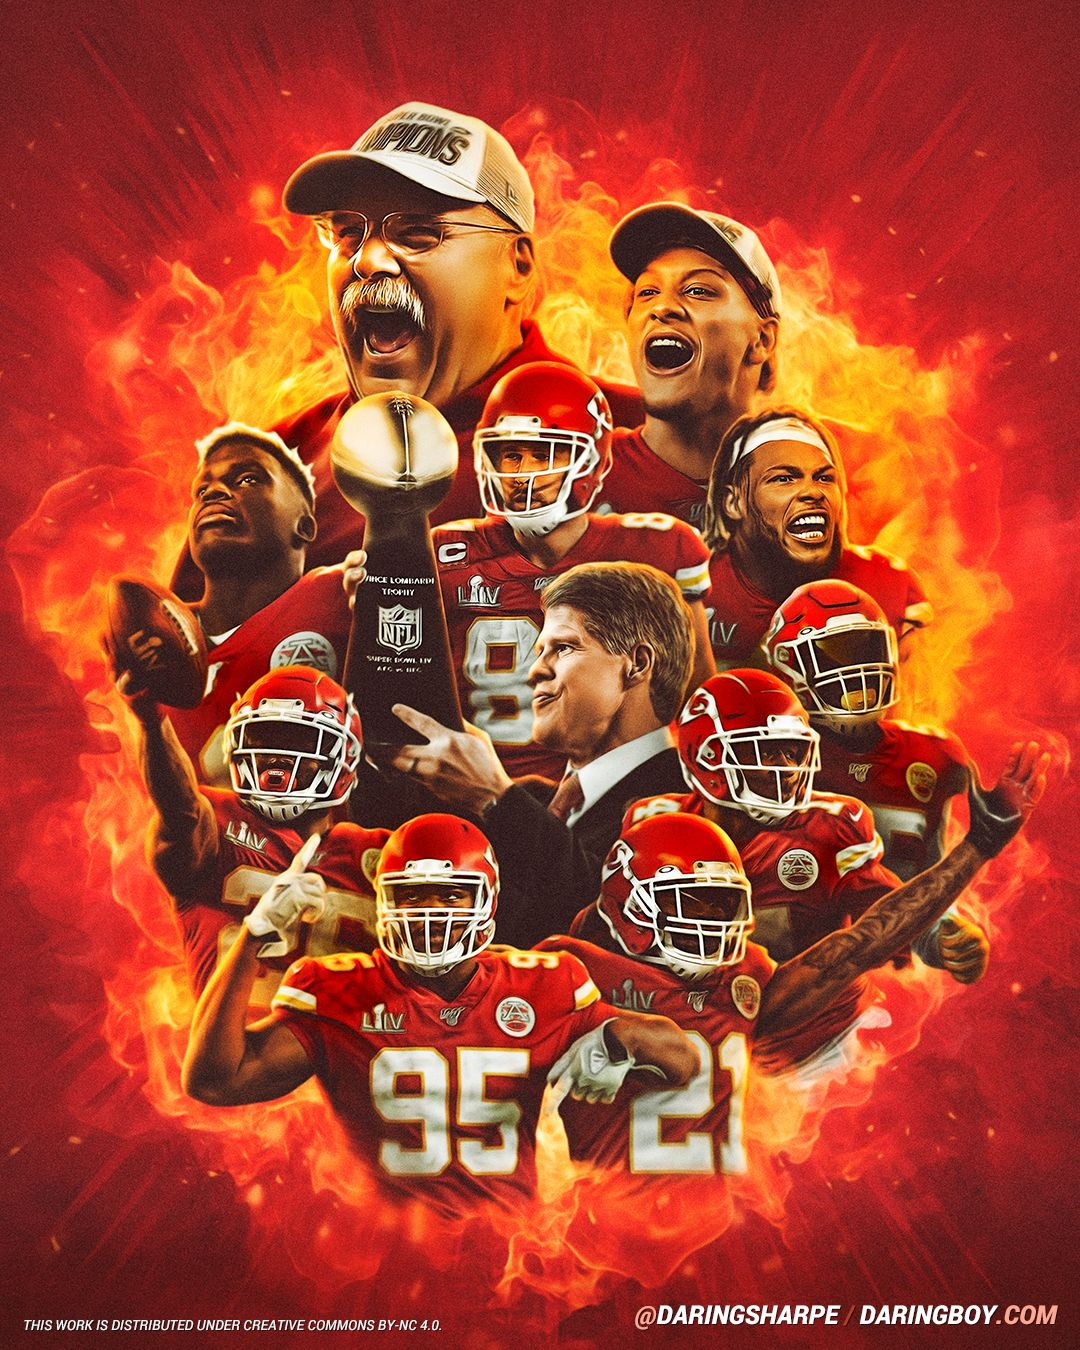 Andy Reid Patrick Mahomes Tyrann Mathieu Frank Clark Sammy Watkins Bashaud Breeland Chris Jone In 2020 Chiefs Super Bowl Travis Kelce Kansas City Chiefs Football